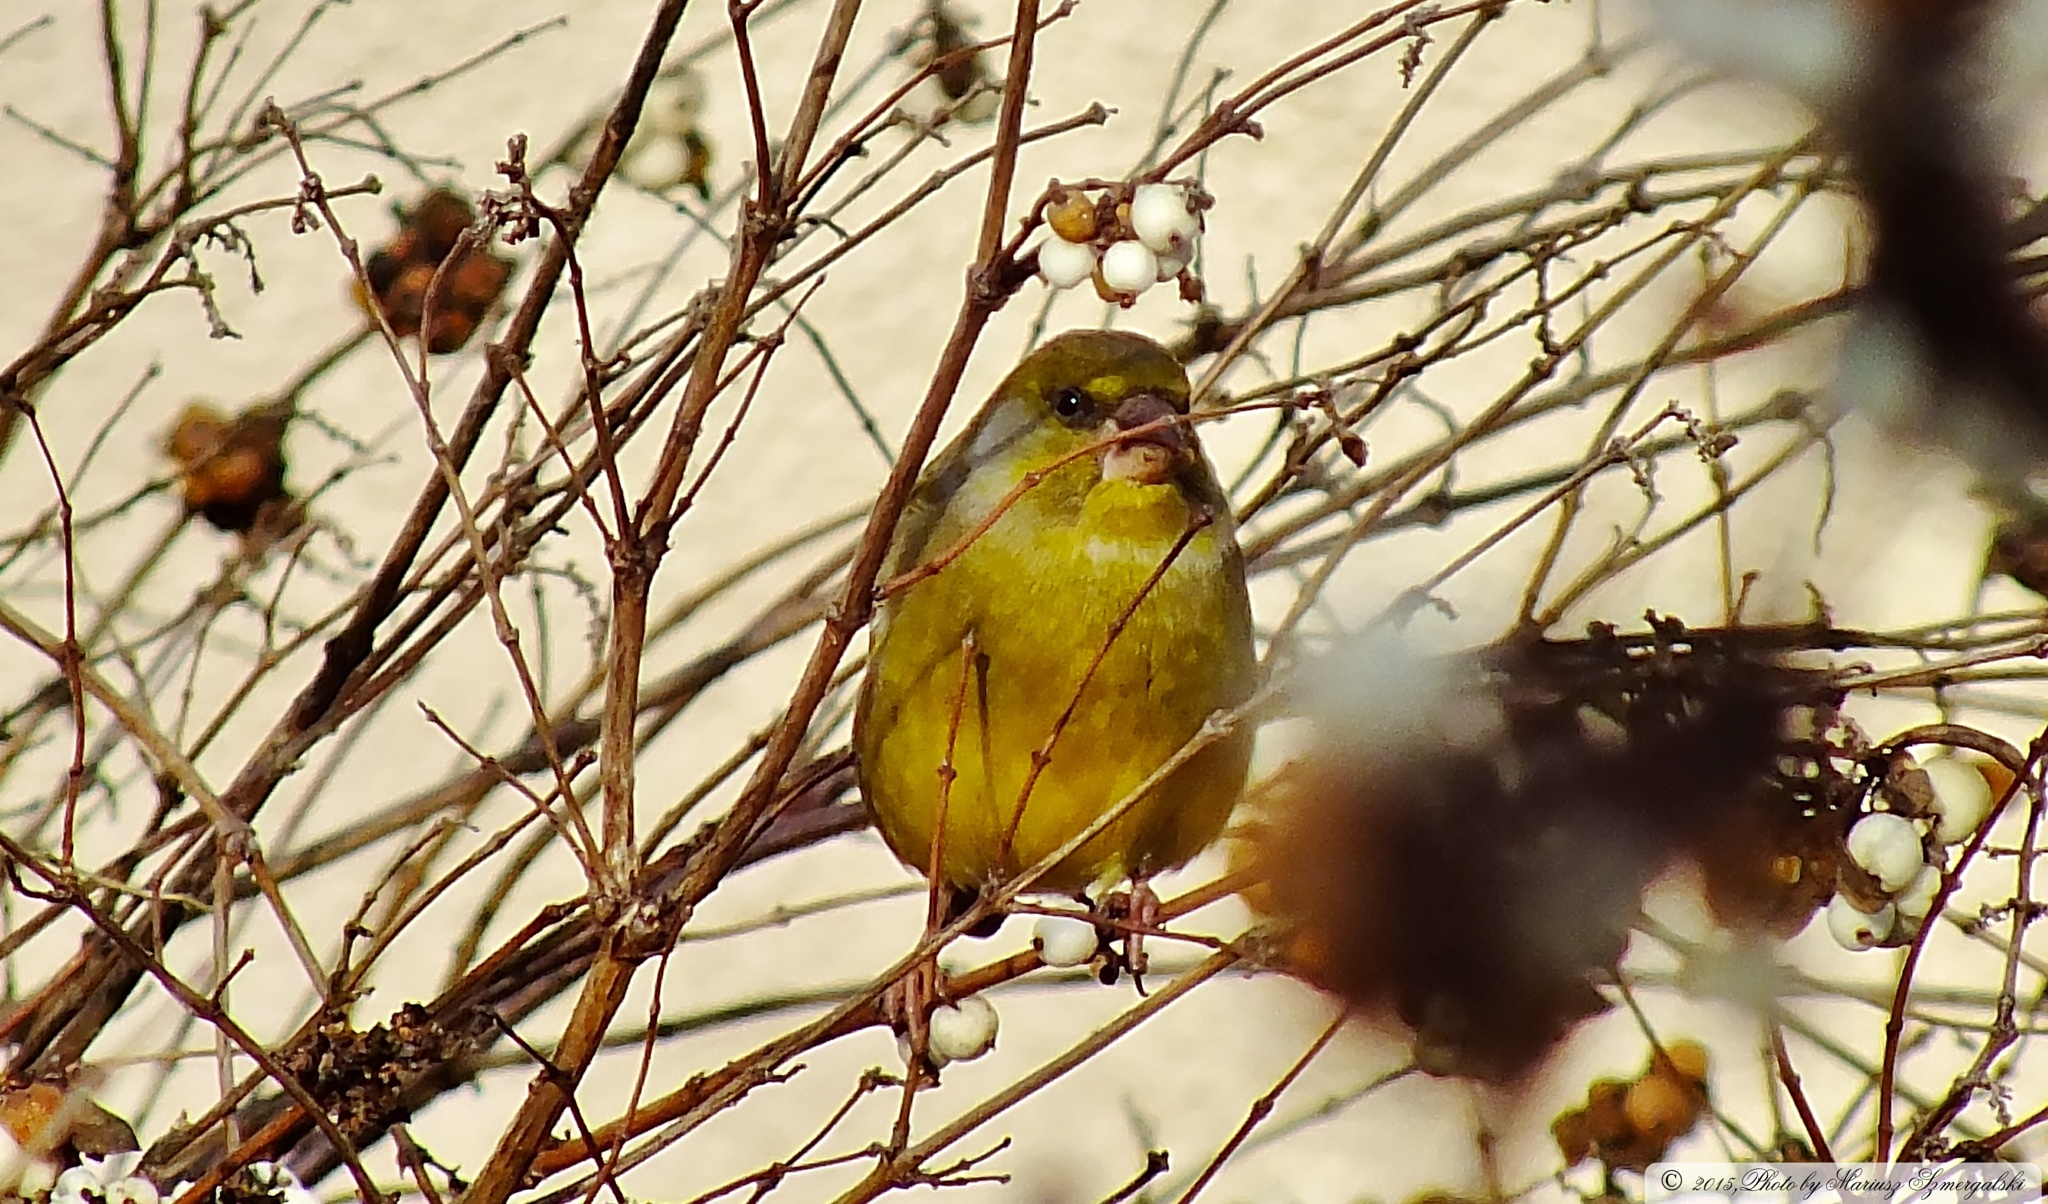 Greenfinch (Chloris chloris) by jon.rambo.37819